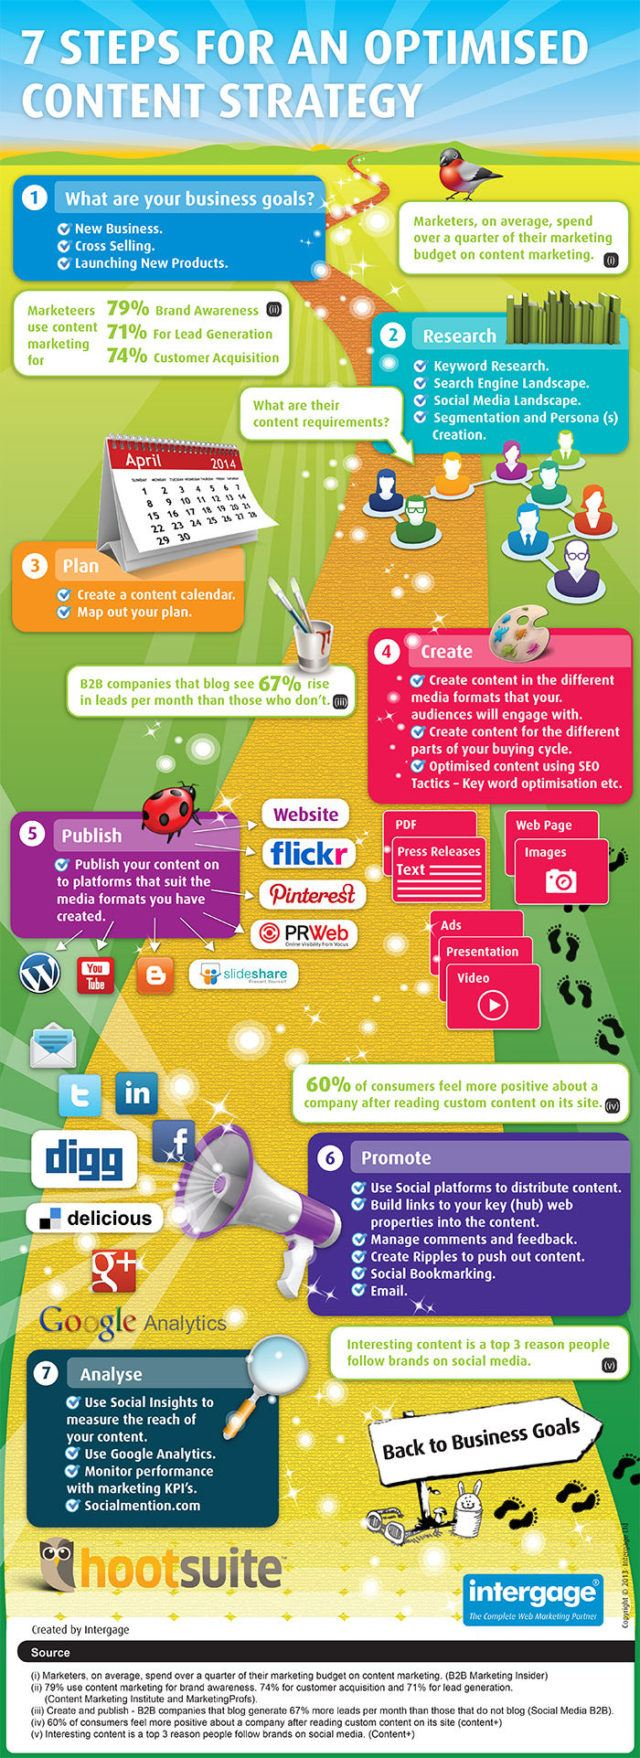 7-steps-content-marketing-success-infographic